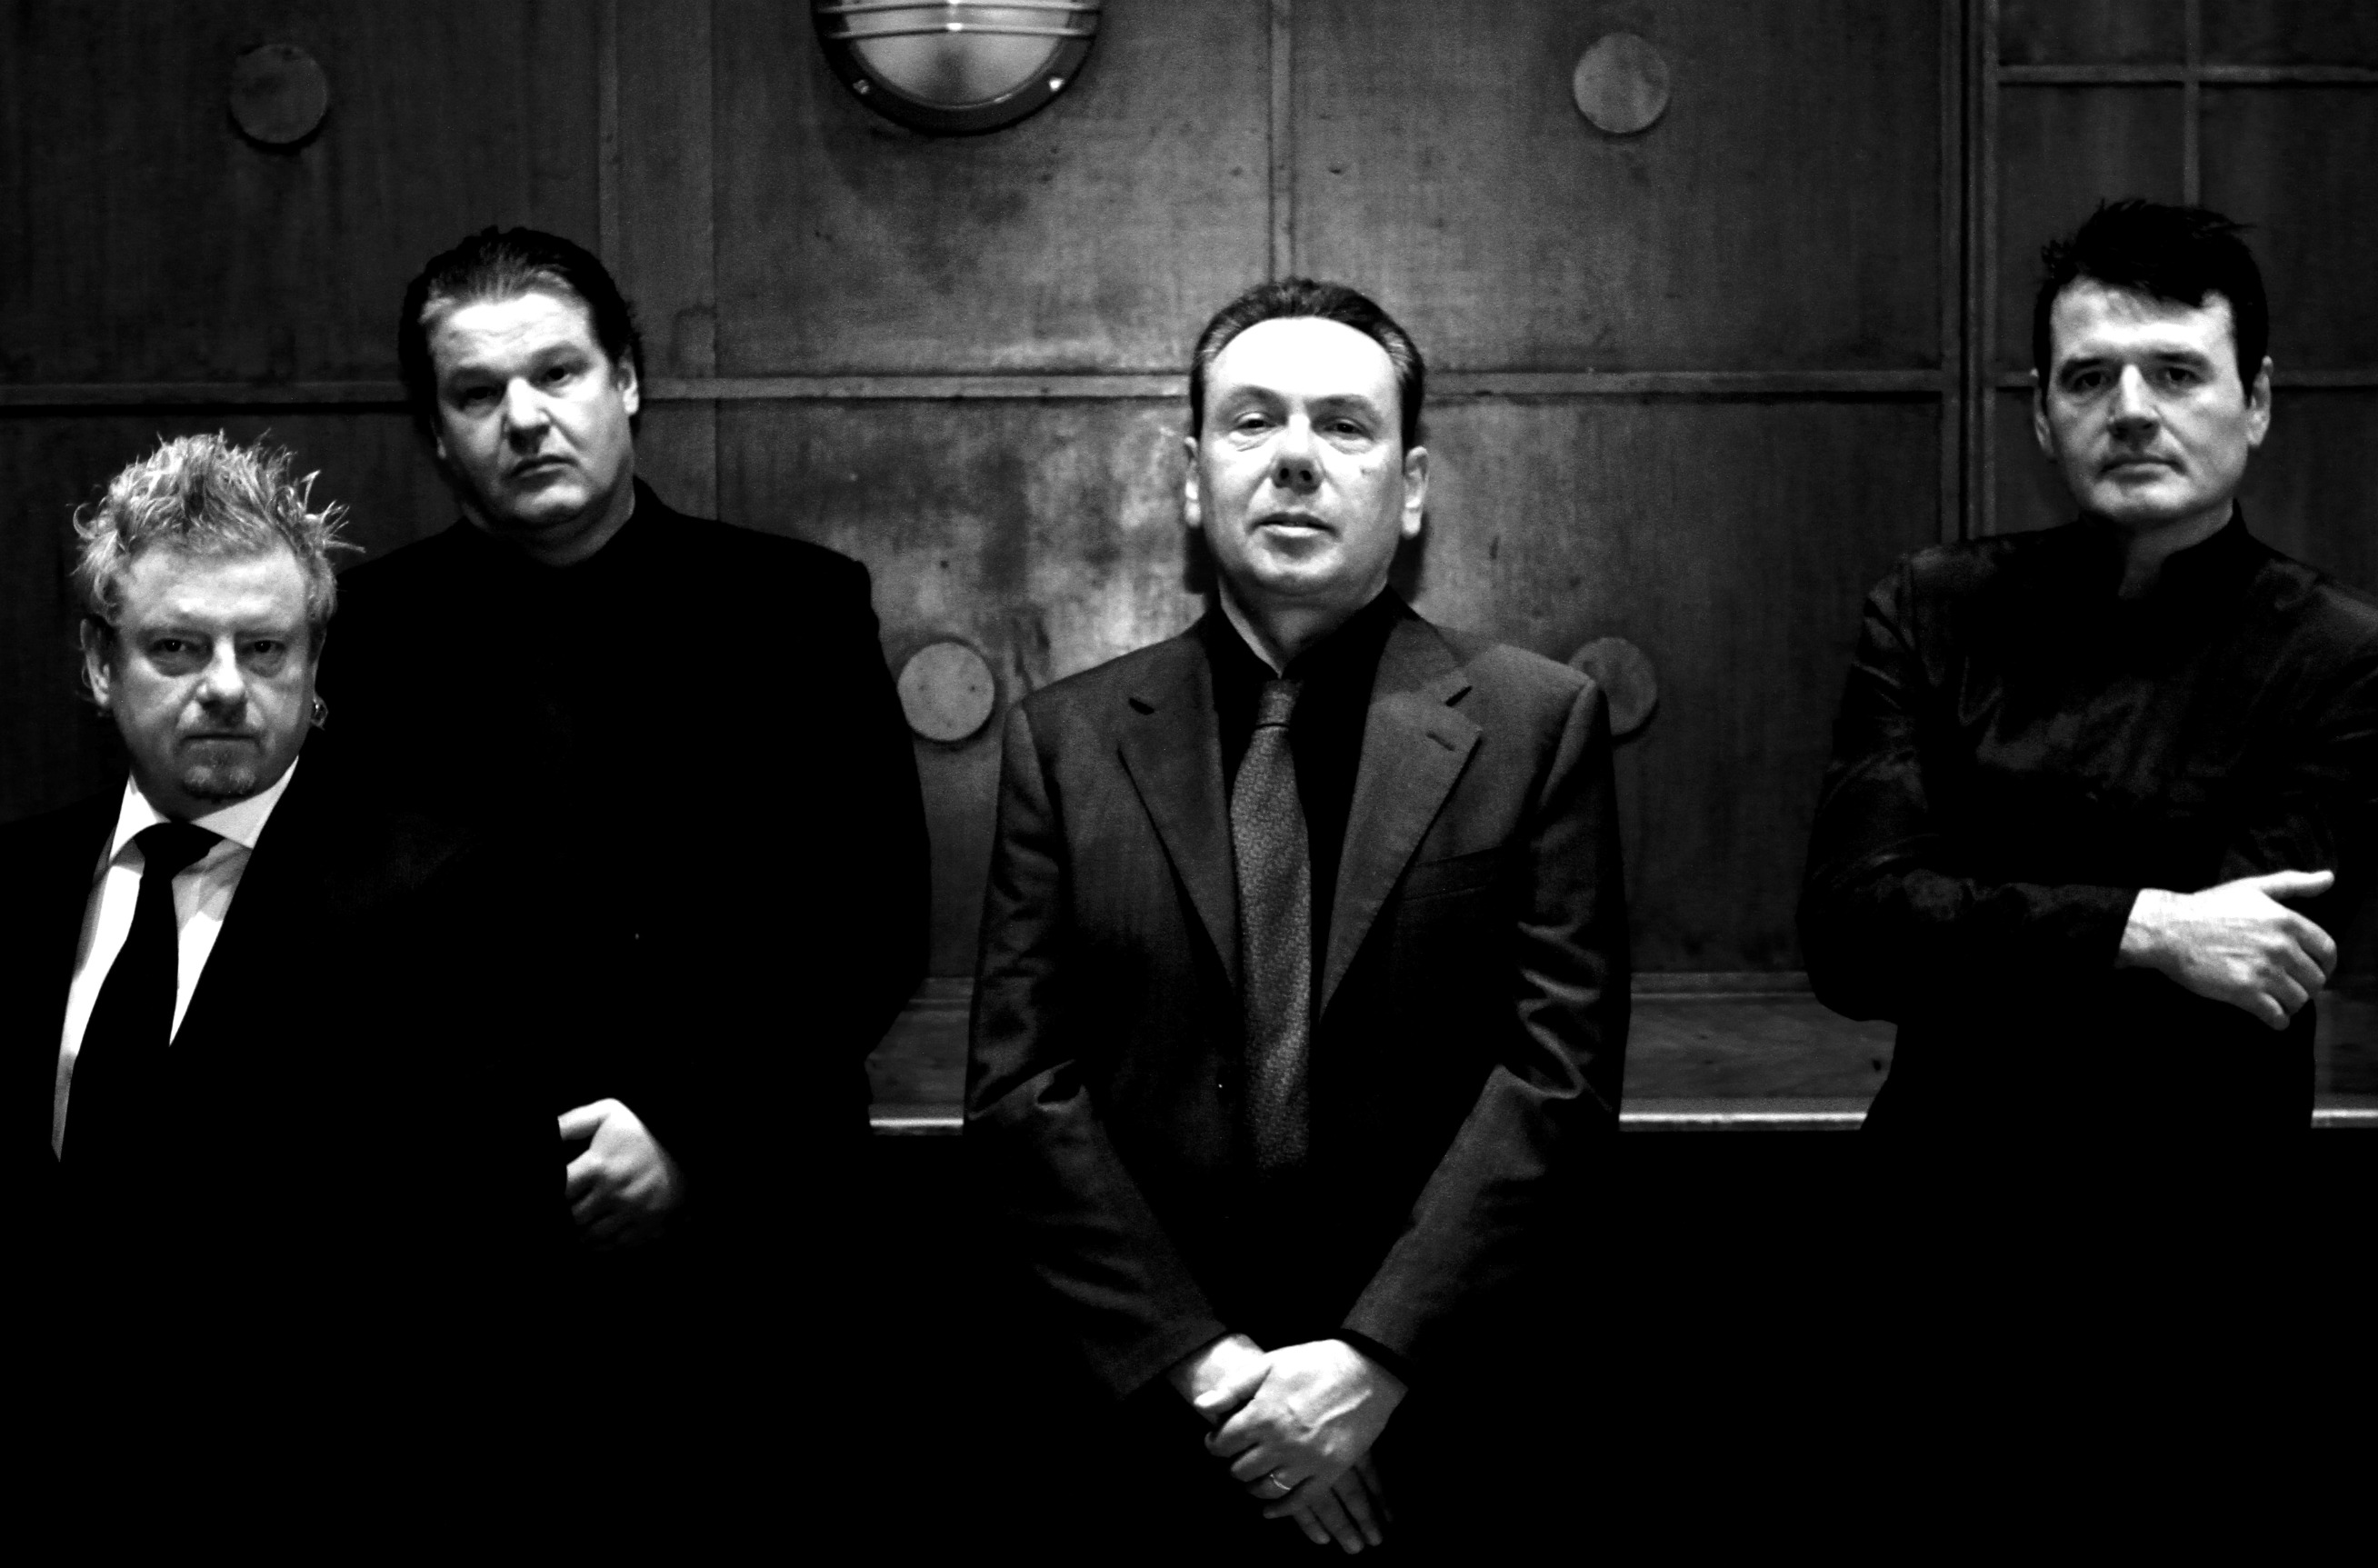 The Godfathers set first U.S. tour in 20 years, St. Valentine's Day Massacre in New York